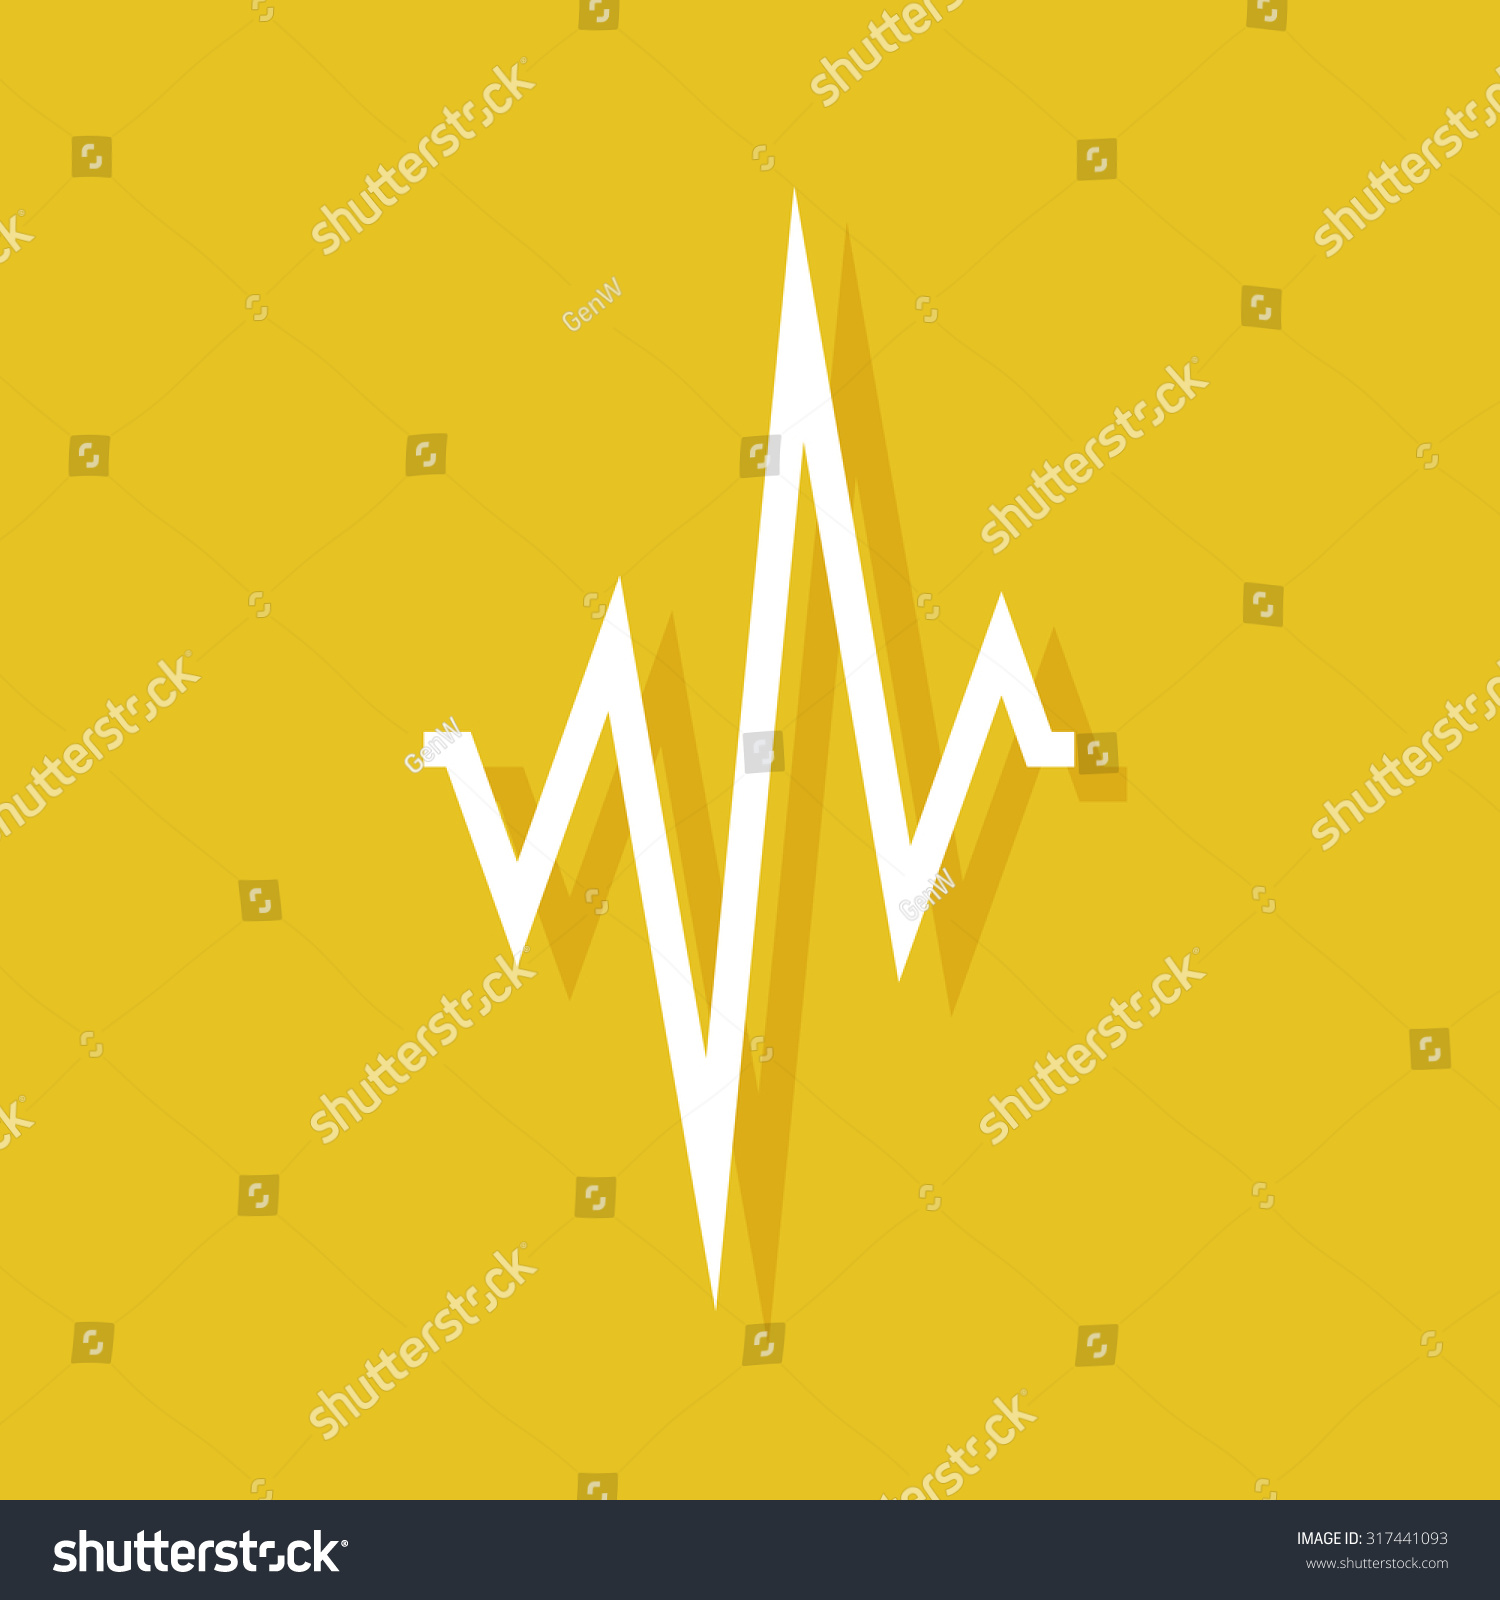 Cardiogram Icon Shadow On Yellow Background Stock Vector